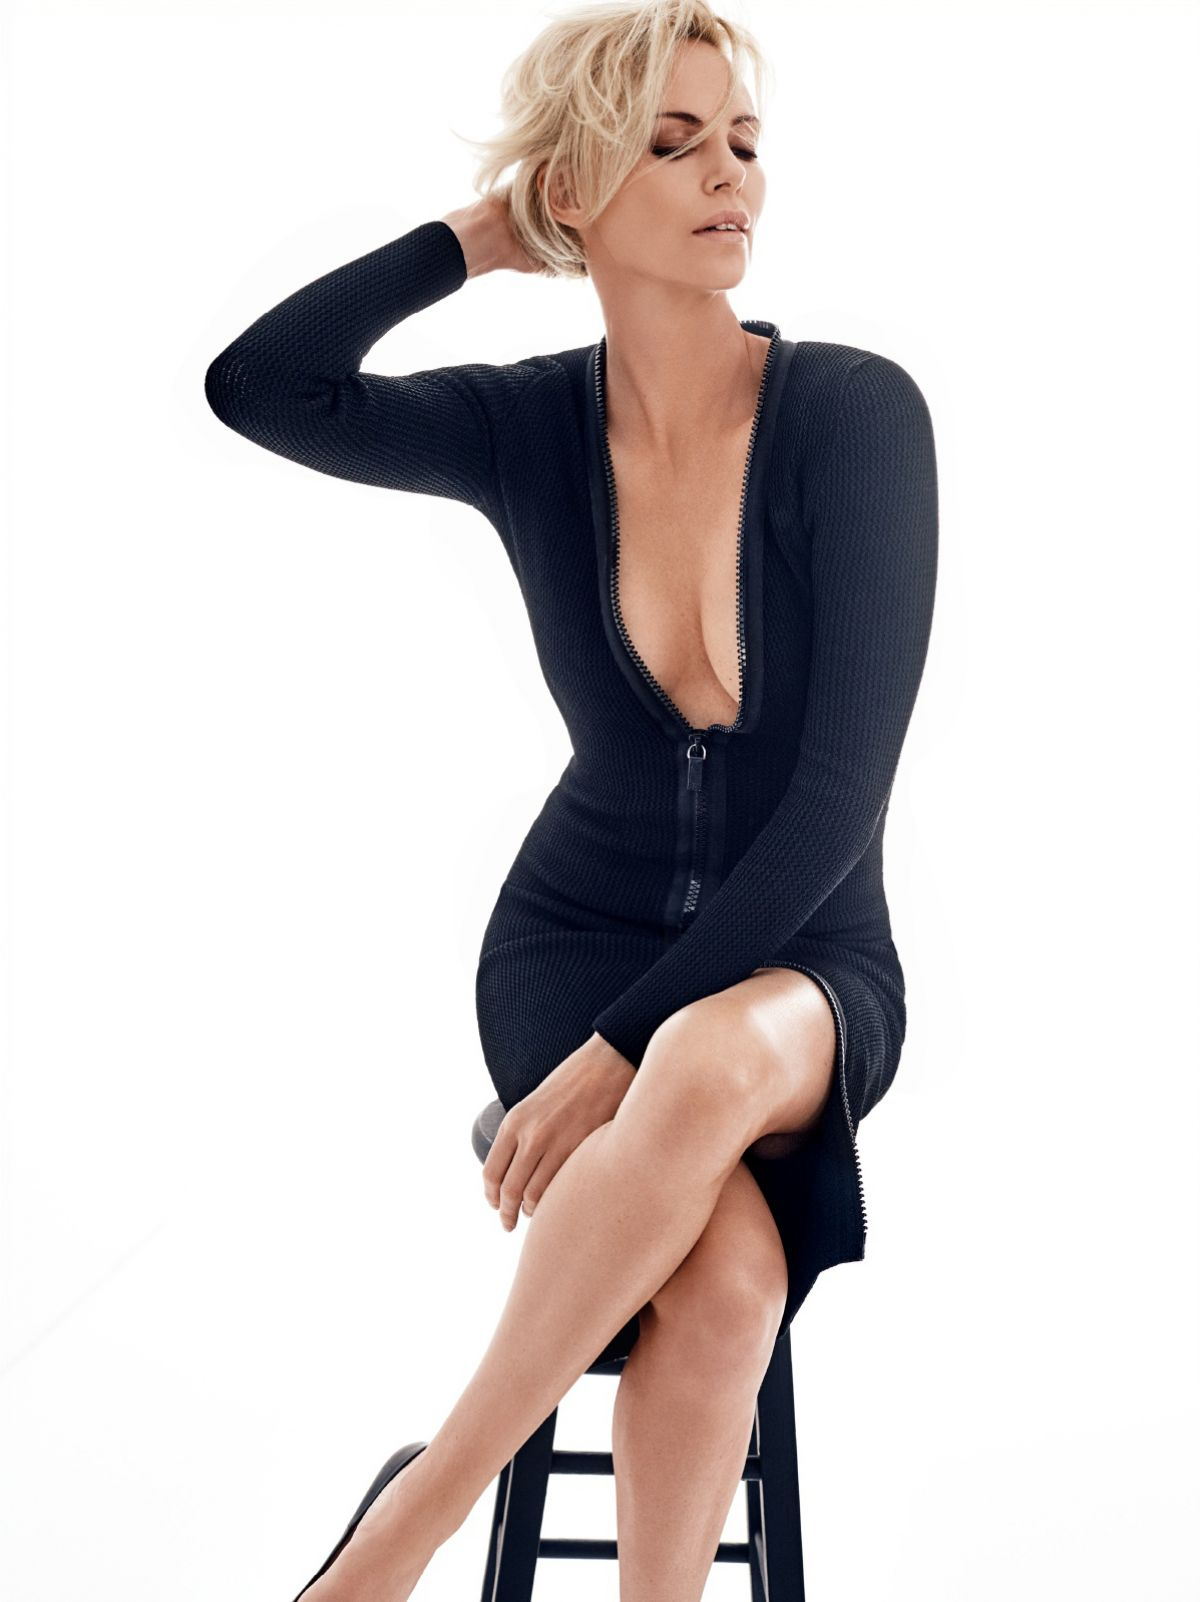 CHARLIZE THERON in GQ Magazine - HawtCelebs - HawtCelebs